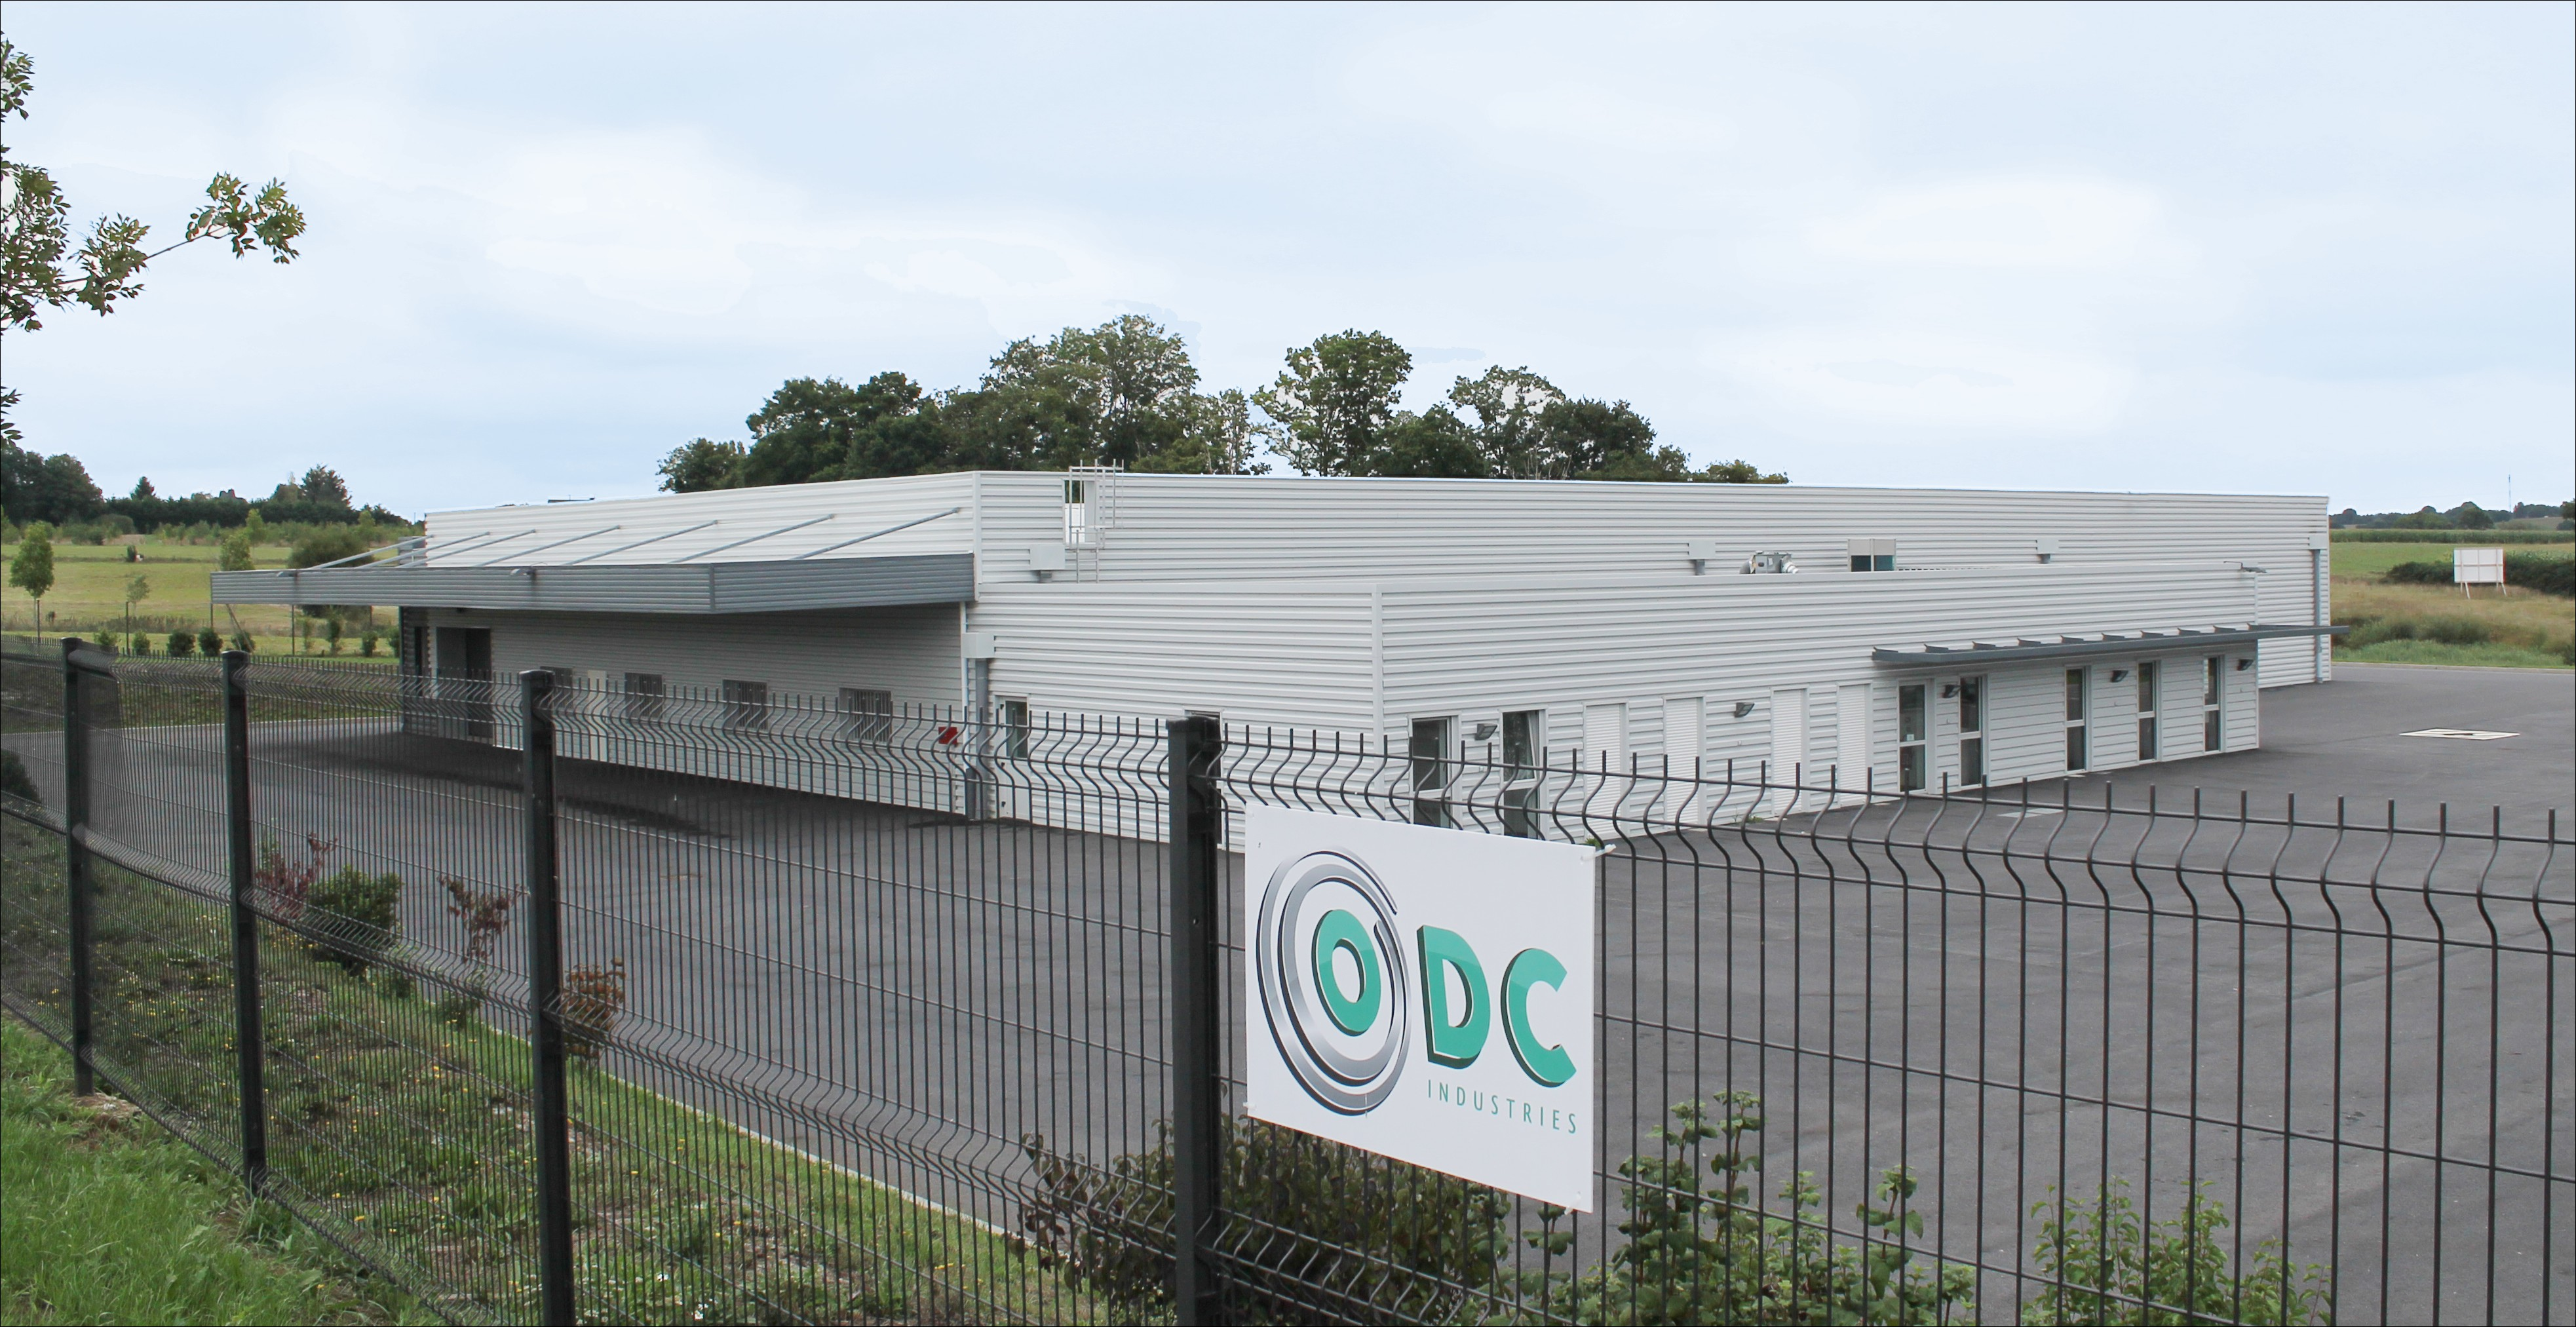 ODC Industries; Ploermel; France; delivery system molding;